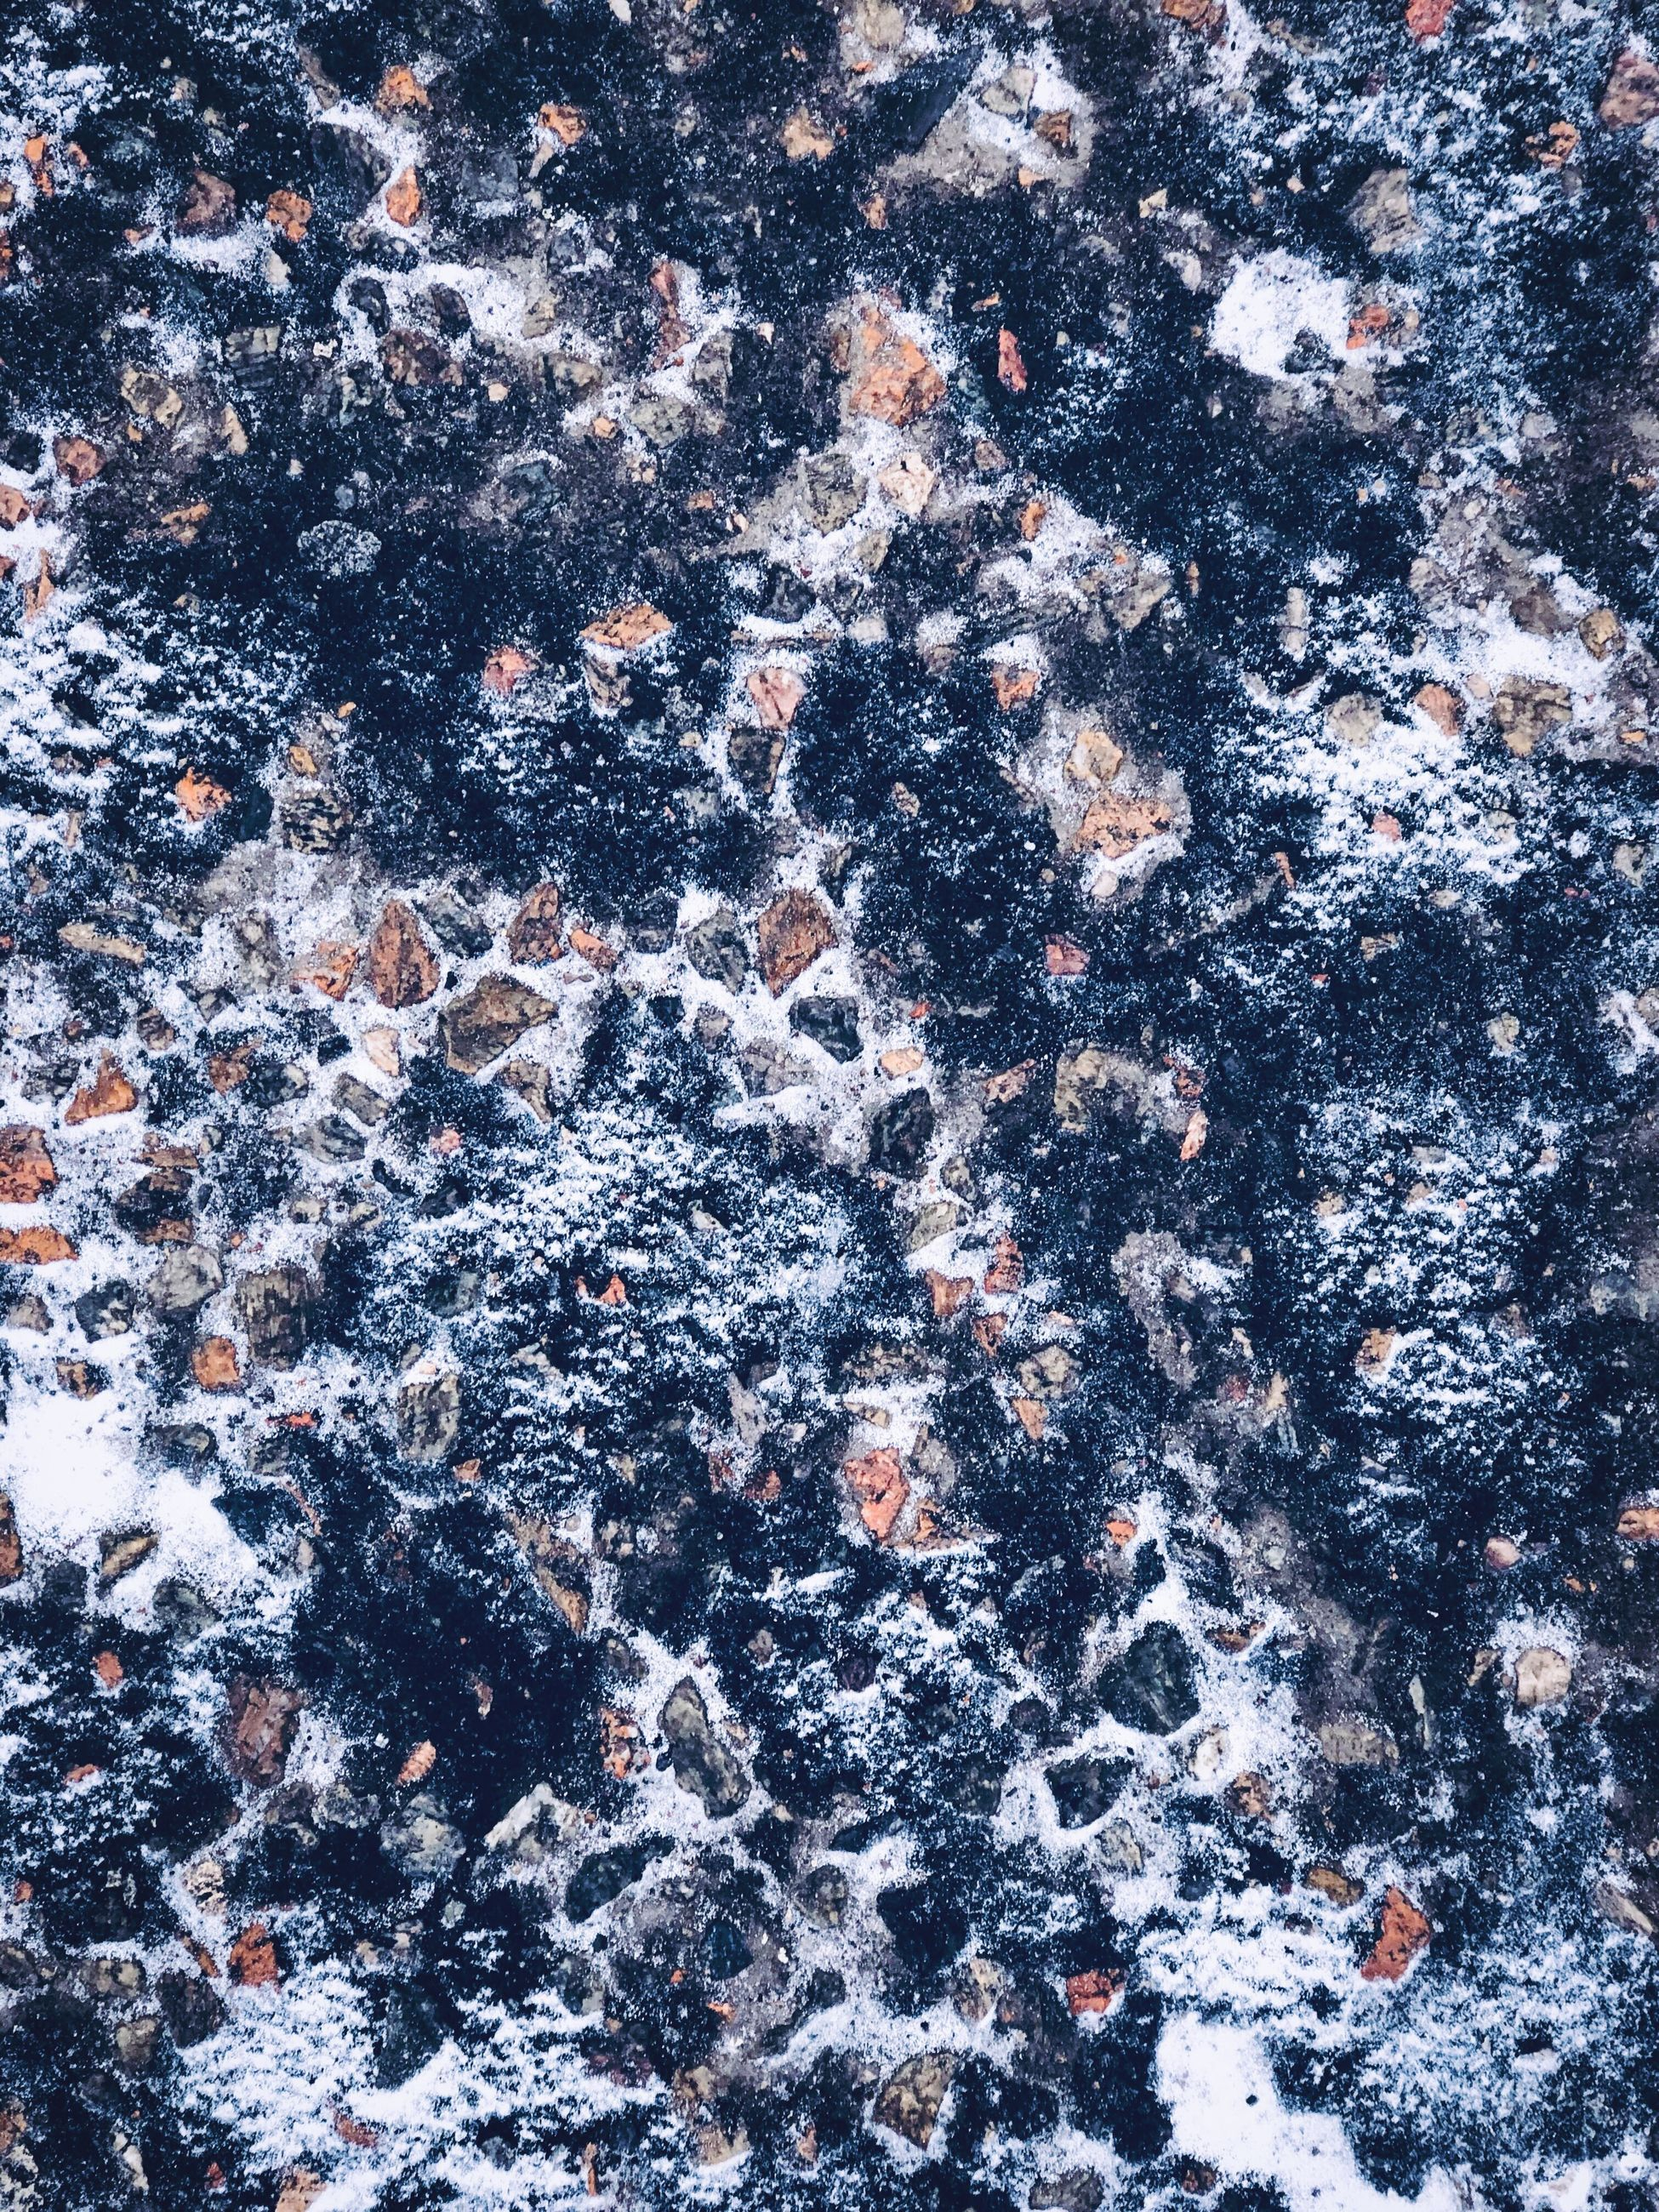 backgrounds, full frame, pattern, textured, no people, abstract, nature, snow, abstract backgrounds, black color, winter, marble, marbled effect, cold temperature, outdoors, rough, gray, built structure, beauty in nature